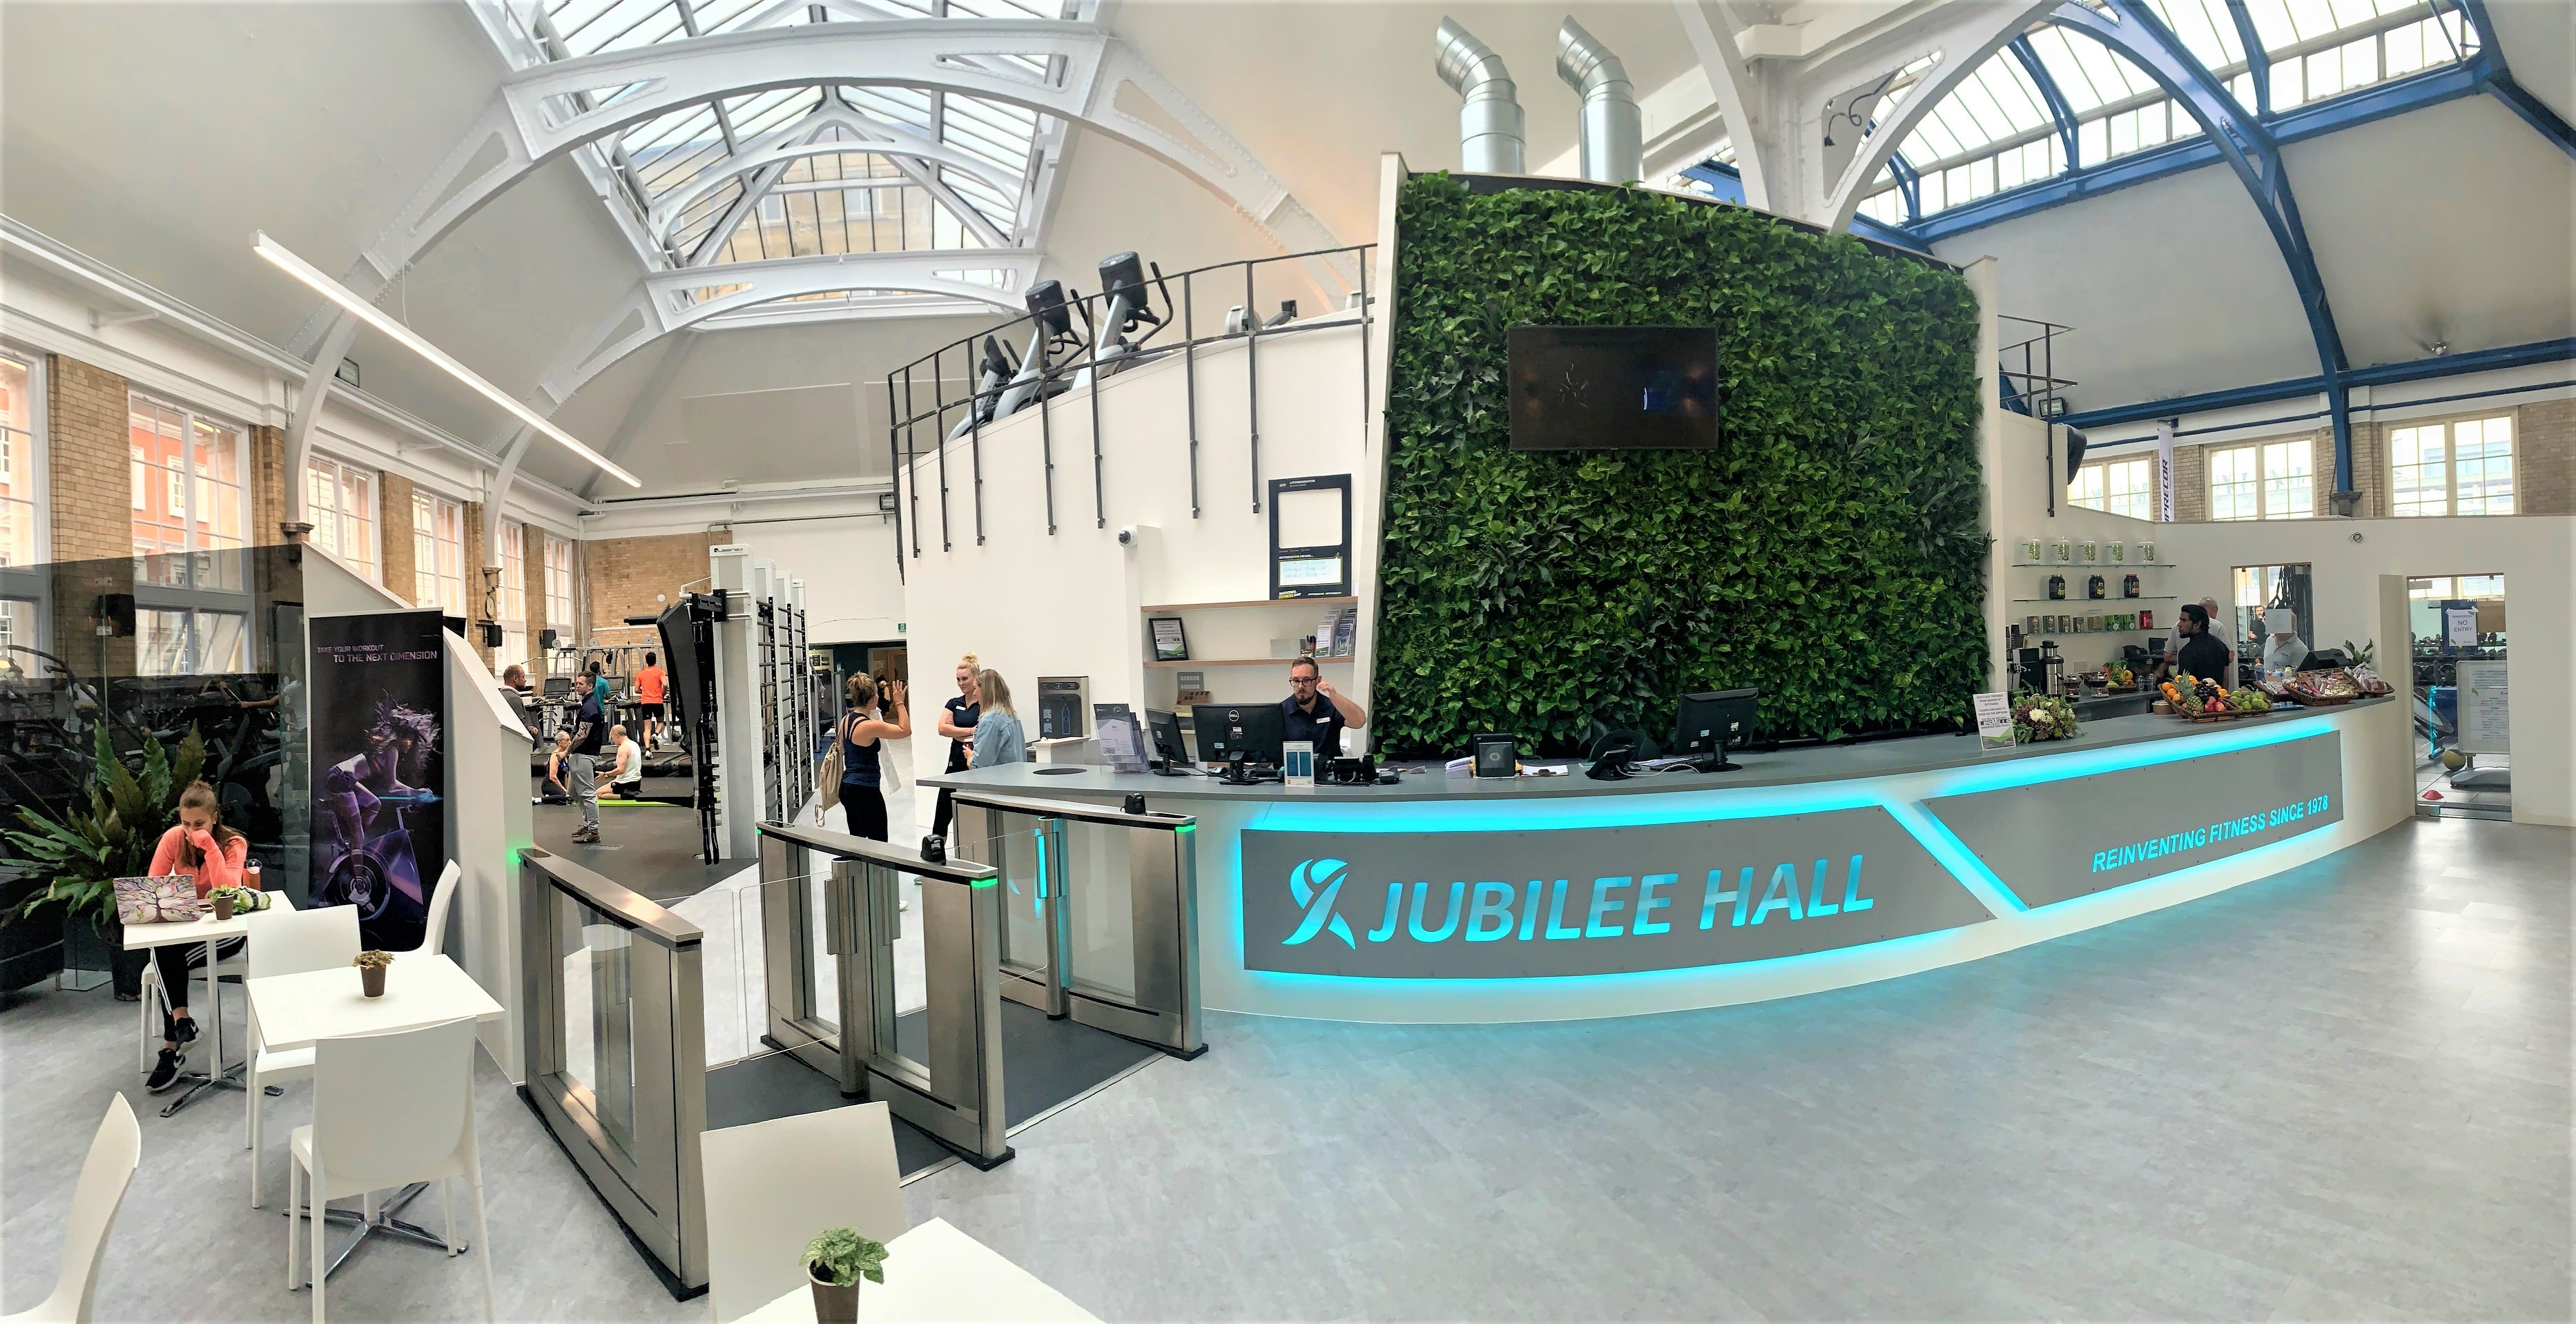 Living Wall in Reception at Jubilee Hall